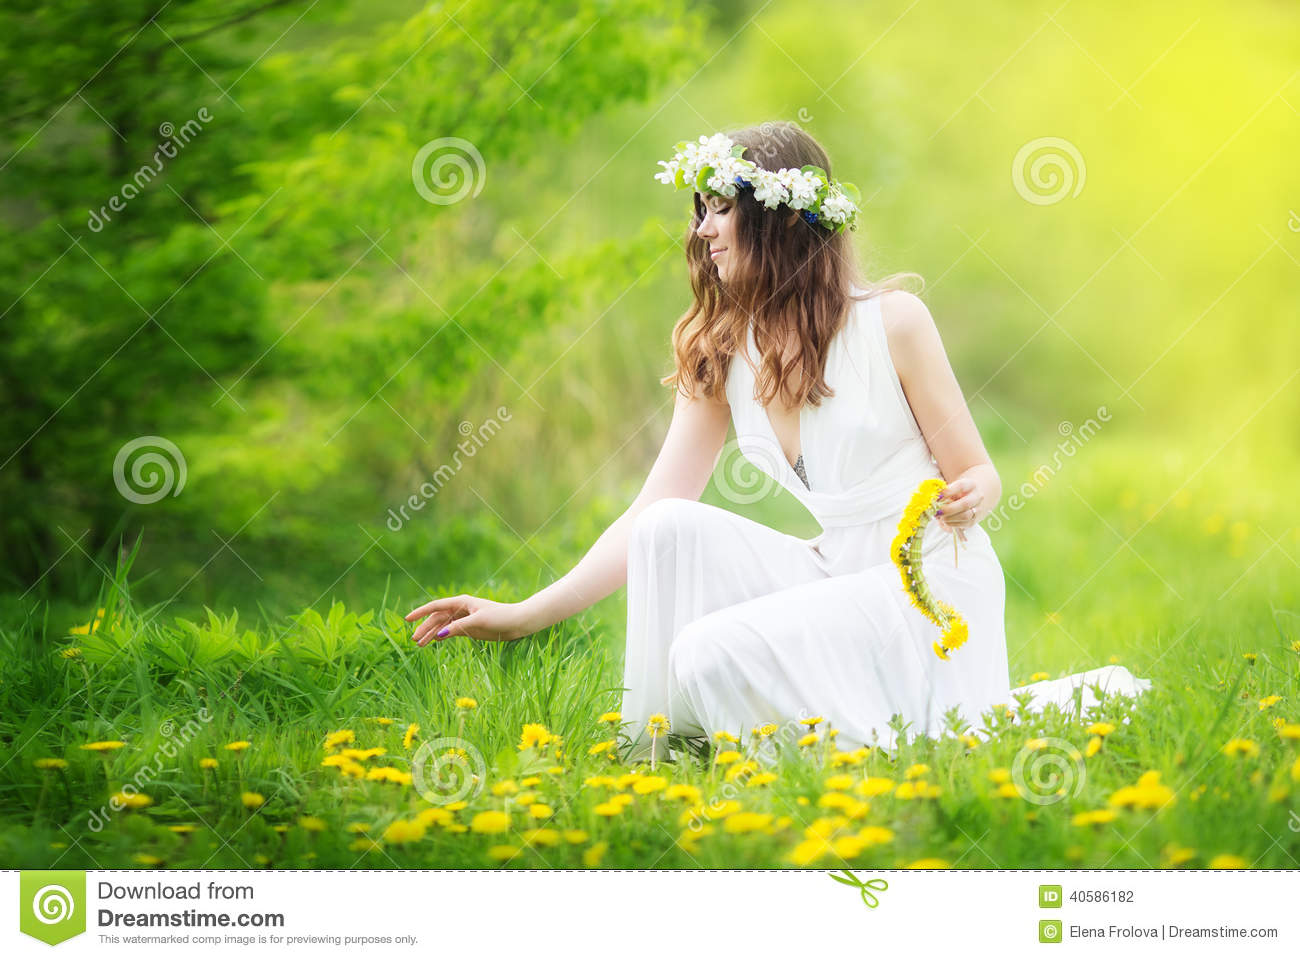 Image of pretty woman in a white dress weaves garland from dandelions in the field, happy cheerful girl resting on dandelions me